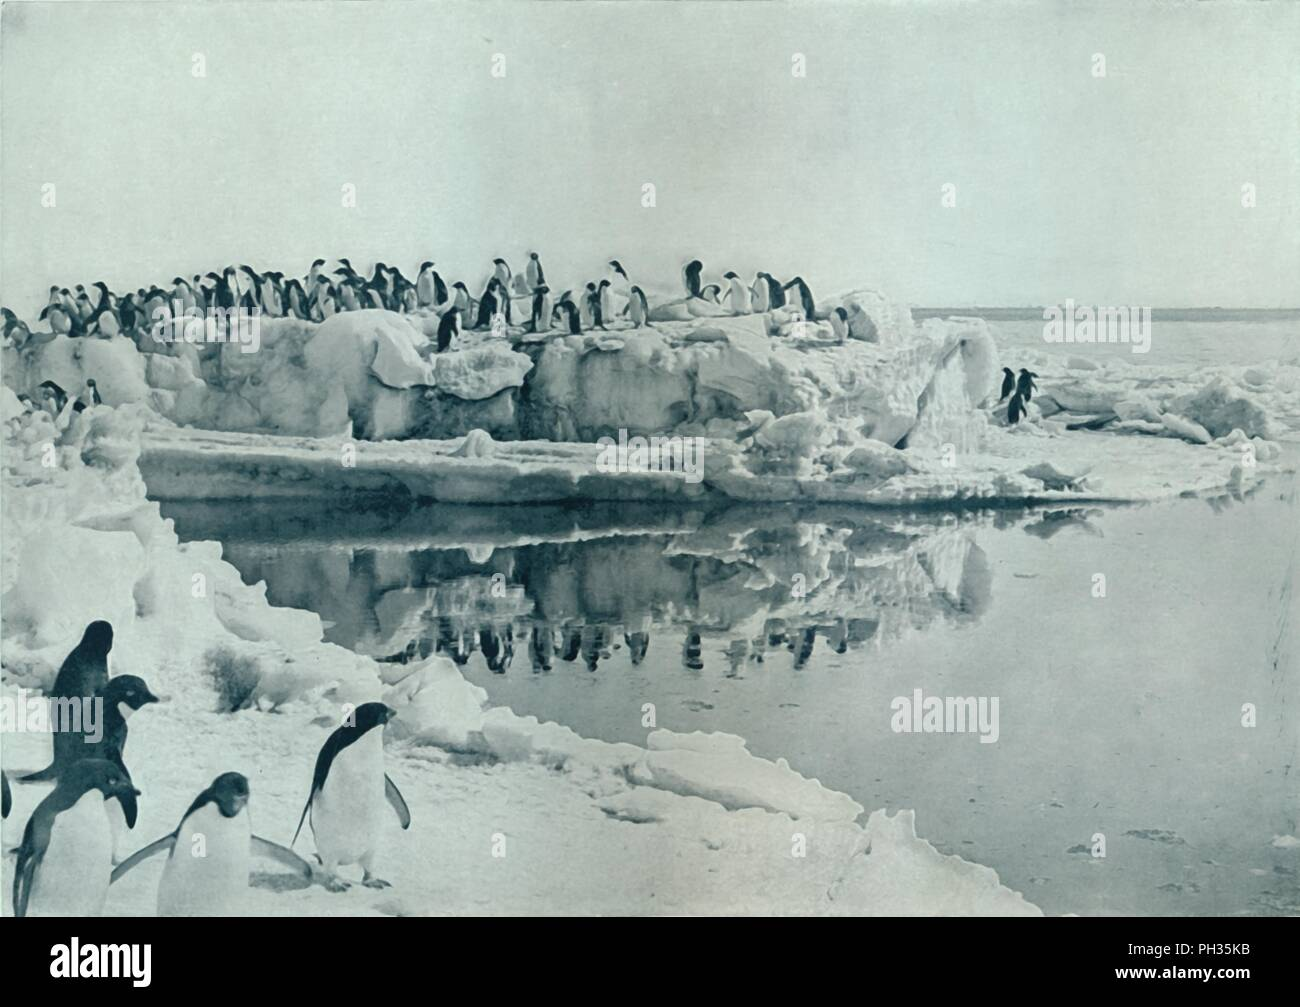 'Penguins on Ice-Foot', c1911, (1913). The final expedition of British Antarctic explorer Captain Robert Falcon Scott (1868-1912) left London on 1 June 1910 bound for the South Pole. The Terra Nova Expedition, officially the British Antarctic Expedition (1910-1913), included a geologist, a zoologist, a surgeon, a photographer, an engineer, a ski expert, a meteorologist and a physicist among others. Scott wished to continue the scientific work that he had begun when leading the Discovery Expedition to the Antarctic in 1901-04. He also wanted to be the first to reach the geographic South Pole. S - Stock Image